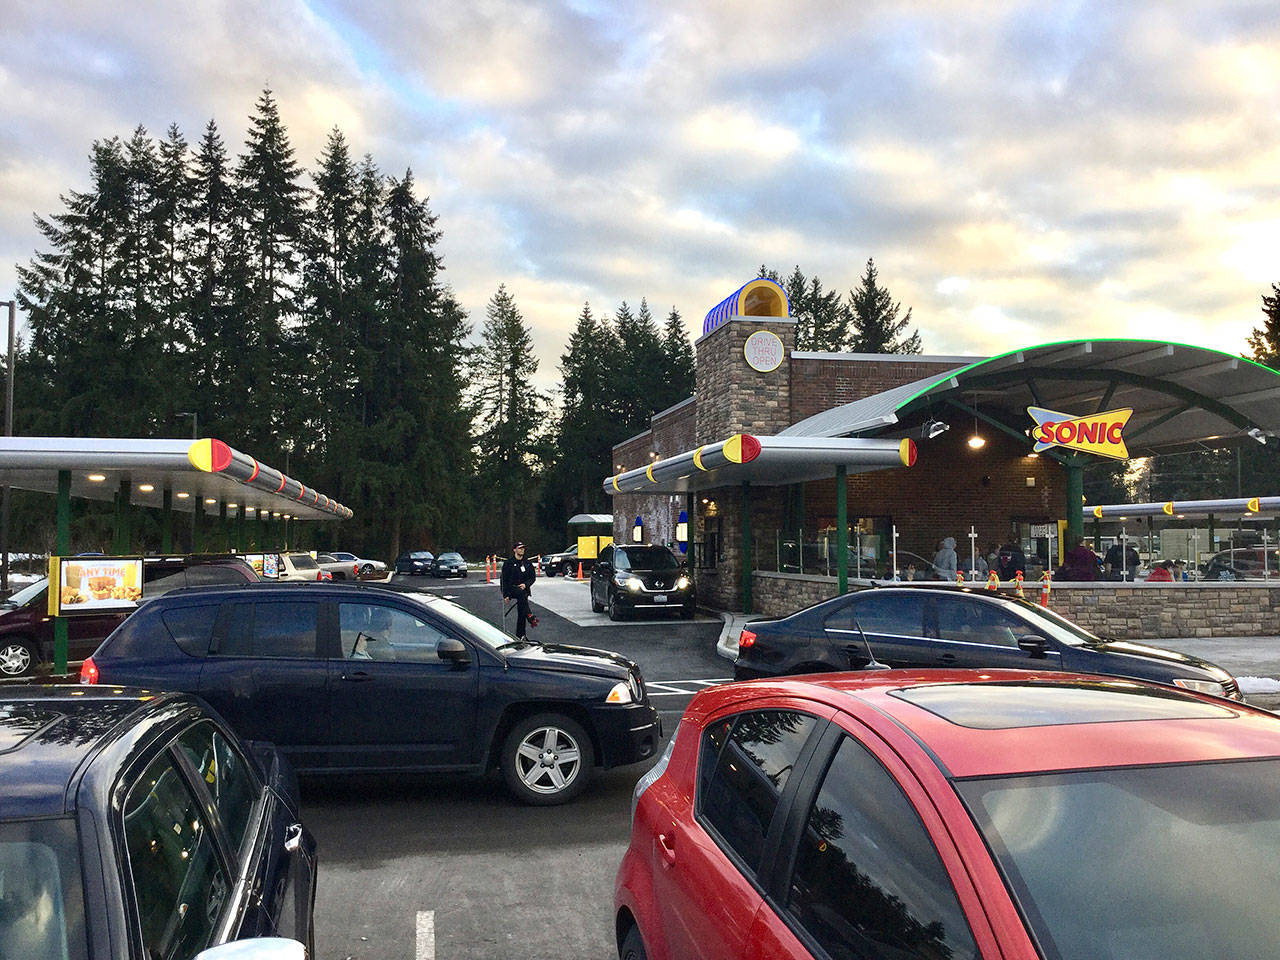 Sonic Drive-In with its slushy type drinks and its Footlong Chili Cheese Coney dogs opened in Marysville last week. (Douglas Buell / Marysville Globe)